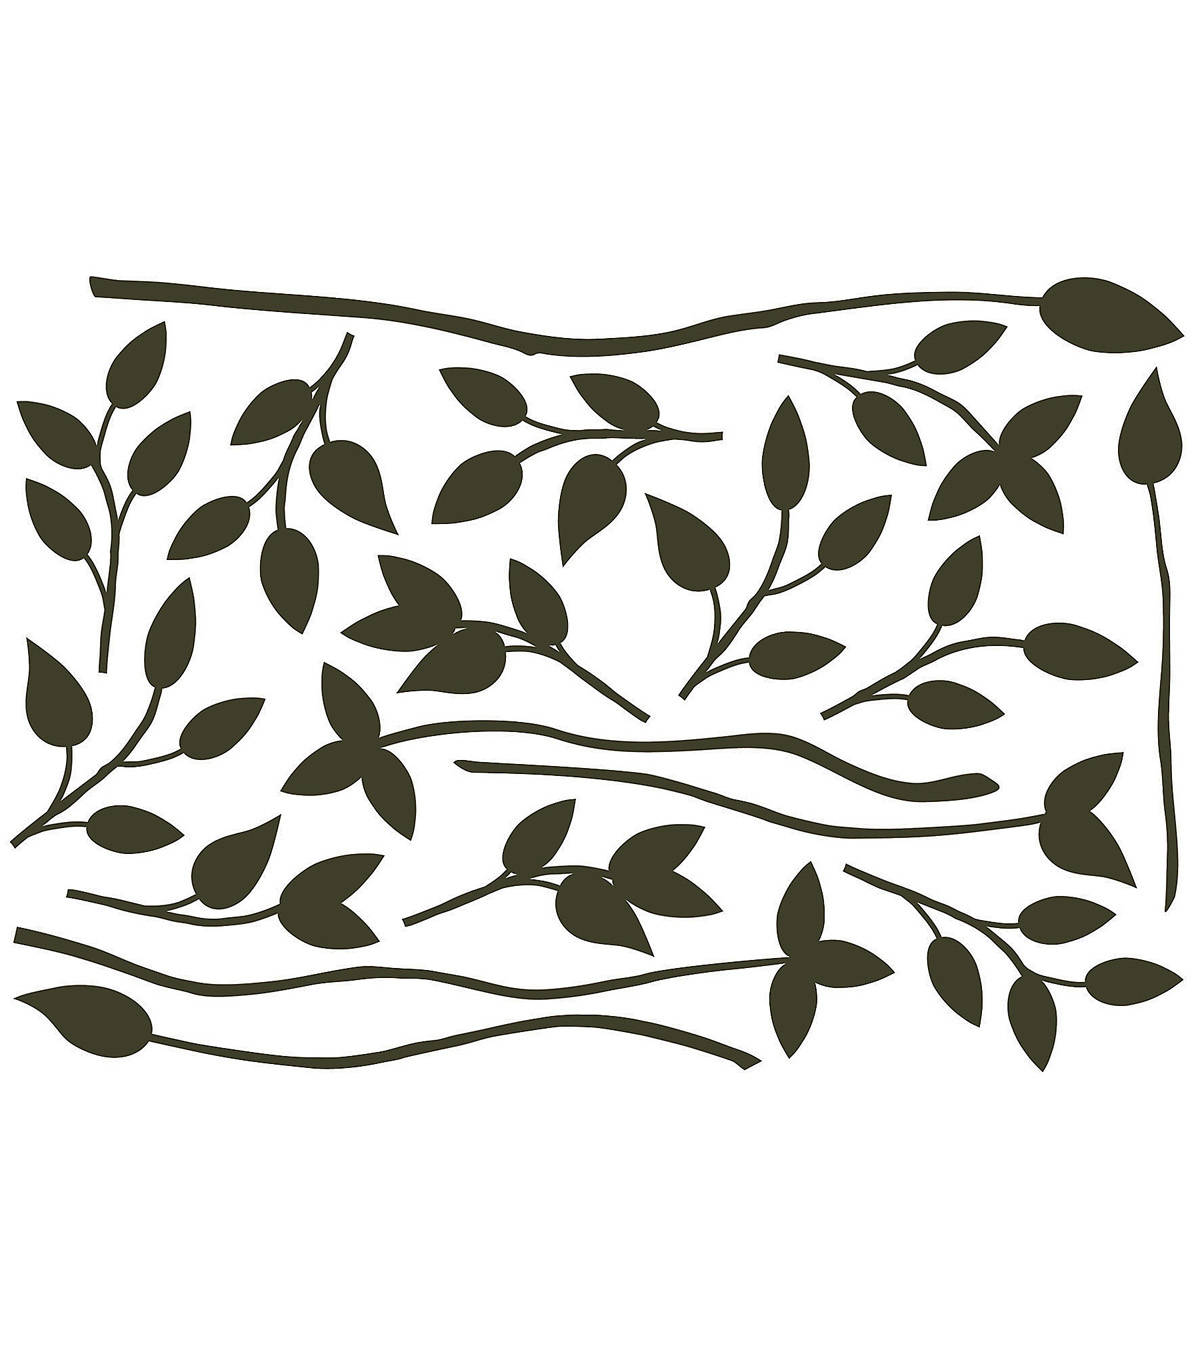 Home Decor Black Branches Wall Stickers, 17 Piece Set